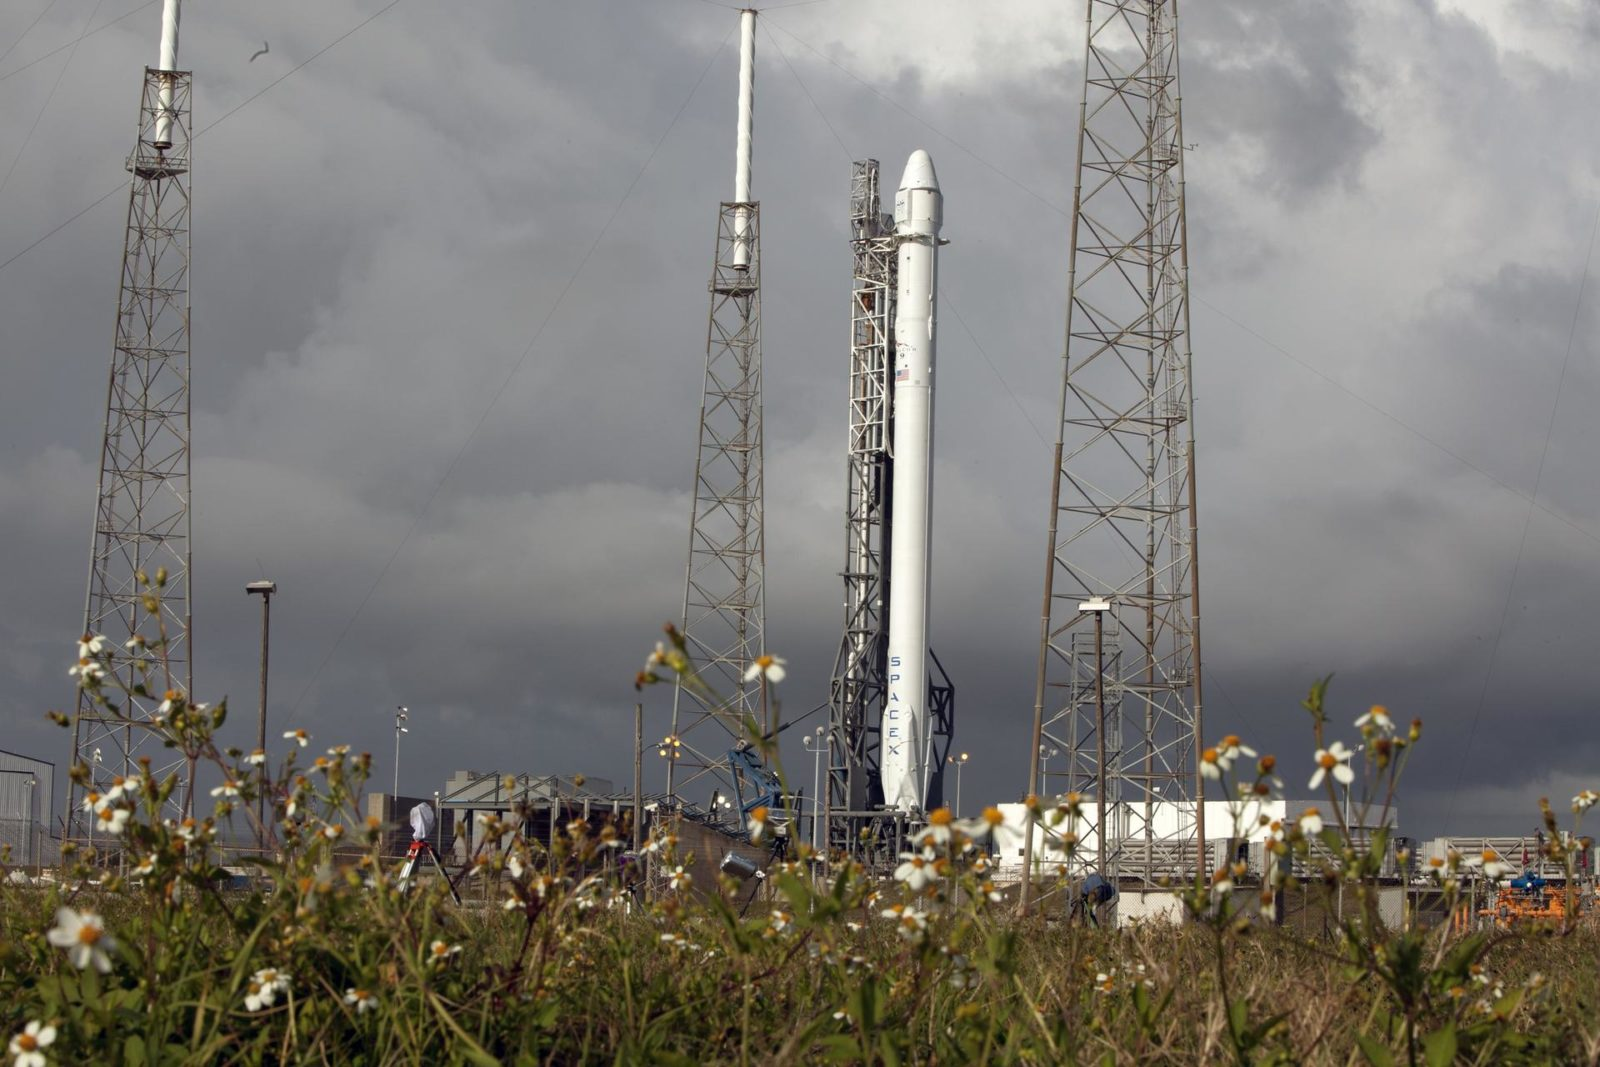 spacex dragon launch - HD1600×1067